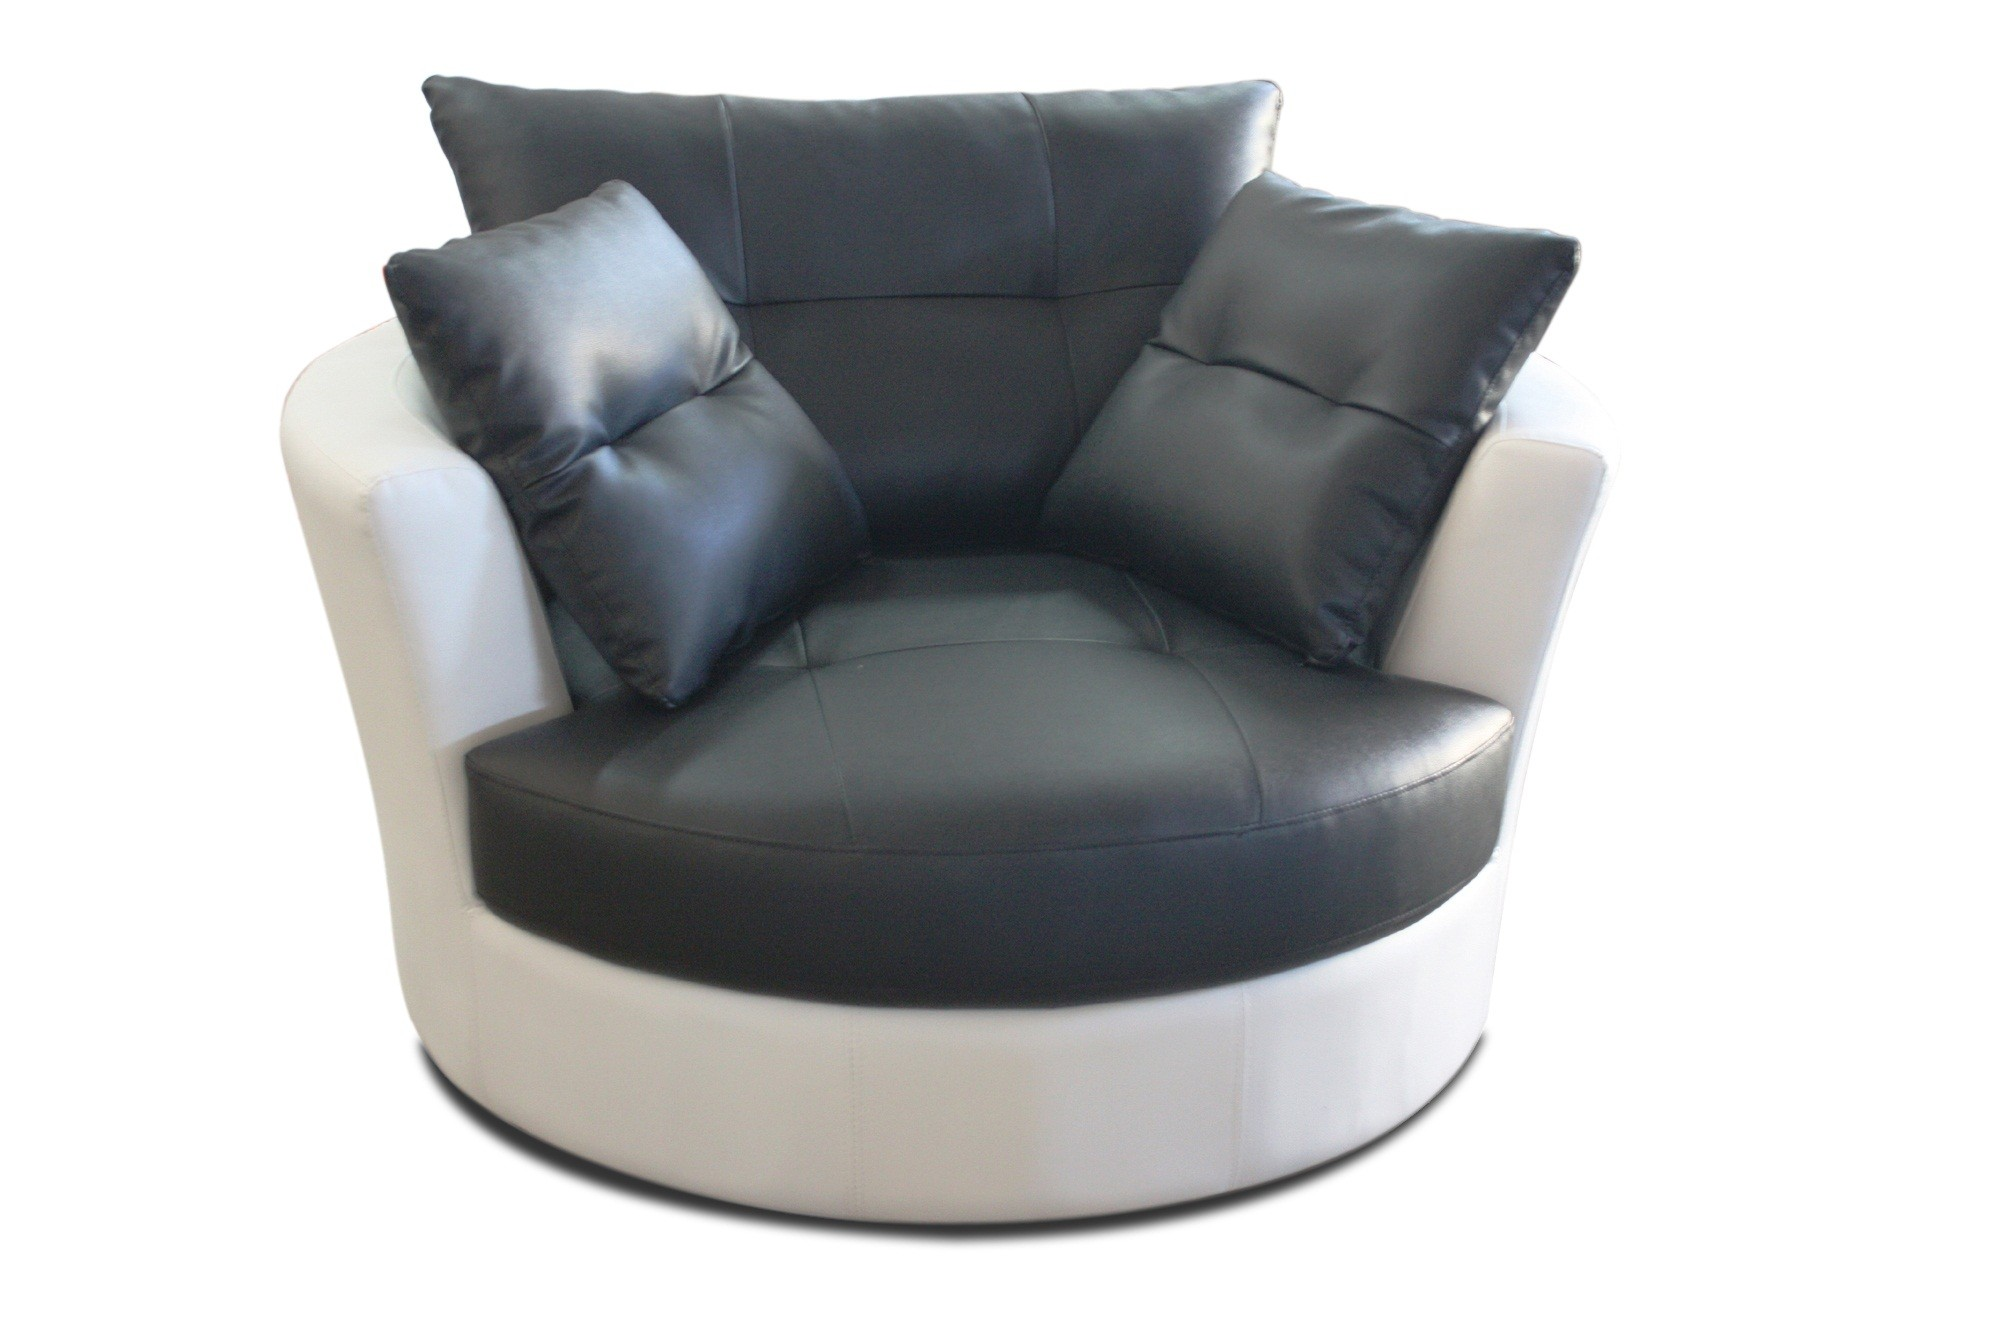 Appealing cuddler chair Cannon cuddler chair swivel chair talia with beautiful colors